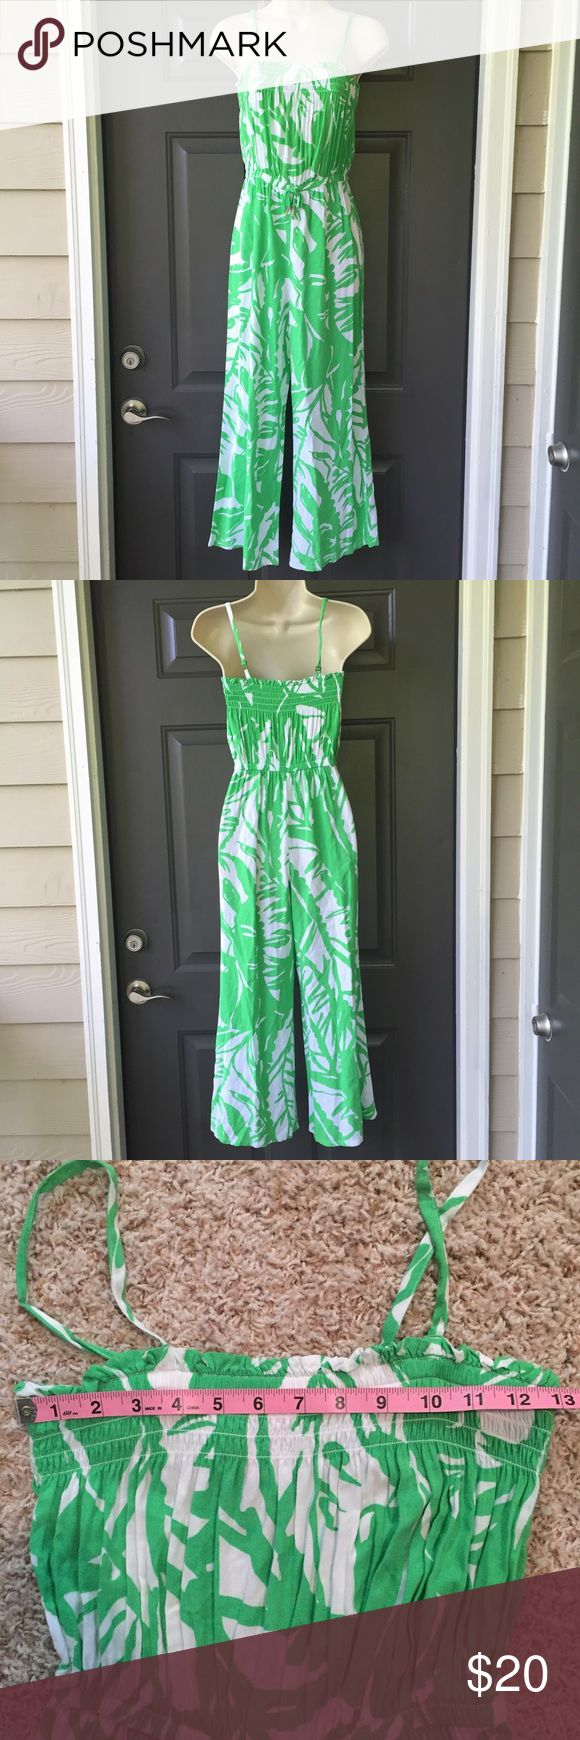 LILLY PULITZER FOR TARGET Girls Jumpsuit Lilly Pulitzer for Target girls jumpsuit. Size large (10/12). Excellent condition. Elastic at the bust and elastic drawstring waist. Total length from shoulder strap with straps fully extended to hem is approximately 51 inches.  Could possibly fit a petite adult. Lilly Pulitzer Bottoms Jumpsuits & Rompers